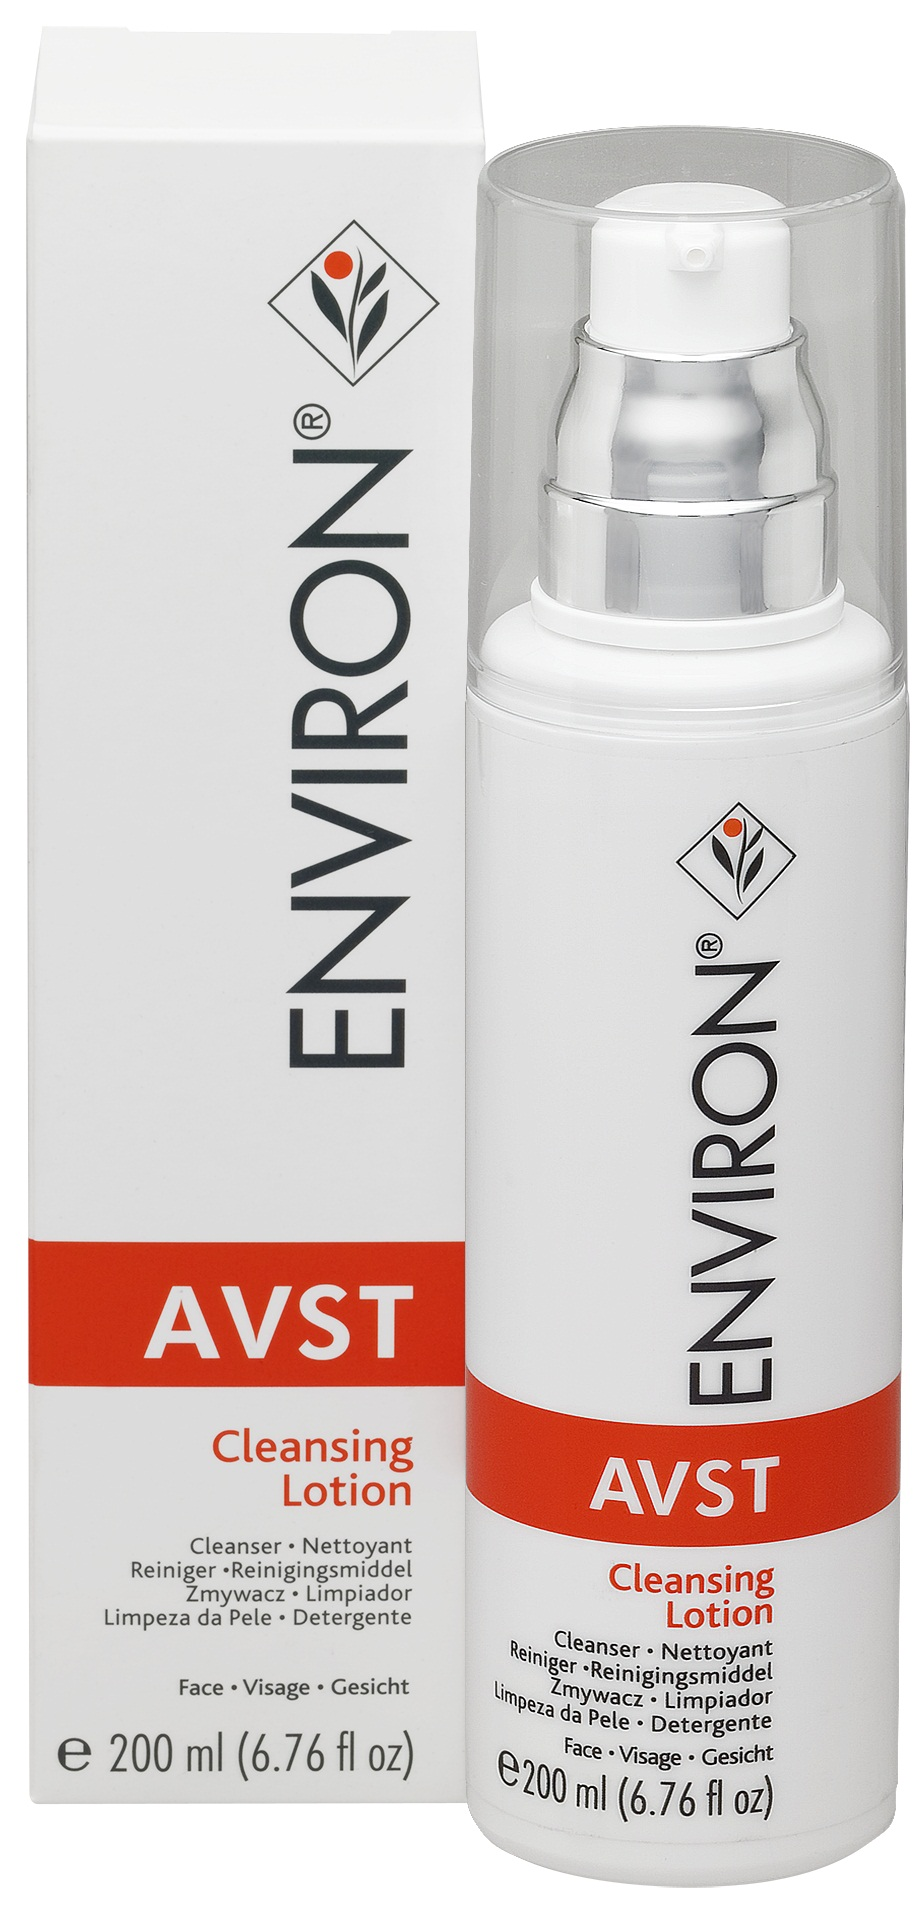 avst clean lotion